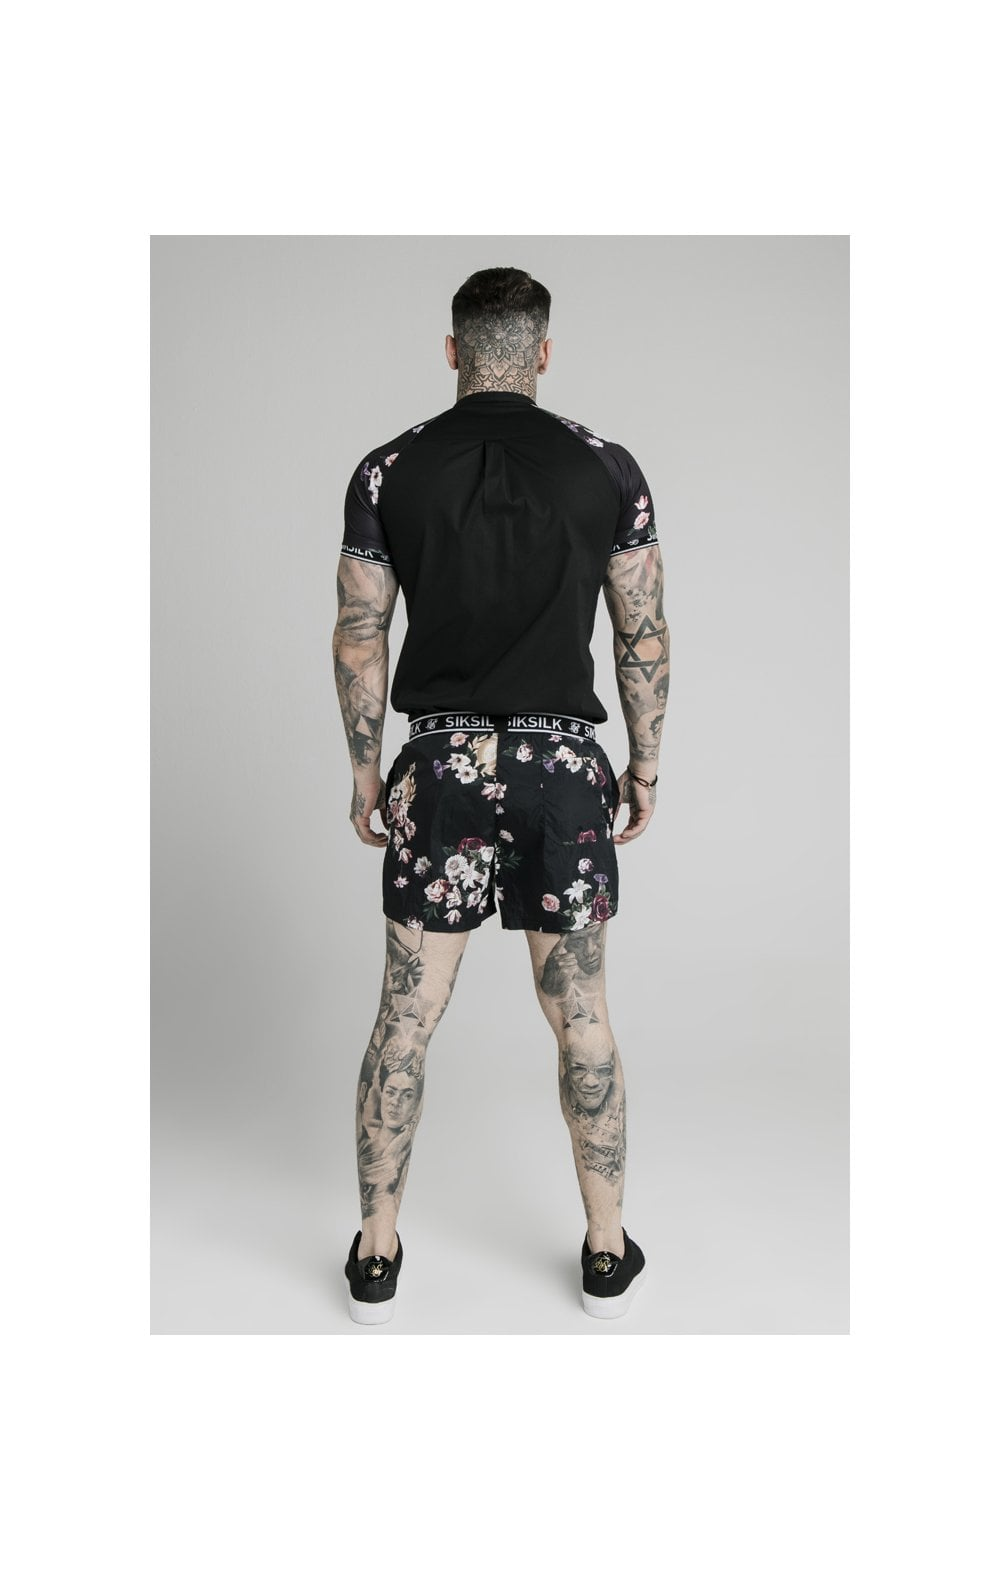 Load image into Gallery viewer, SikSilk Prestige Floral Swim Shorts - Black (6)